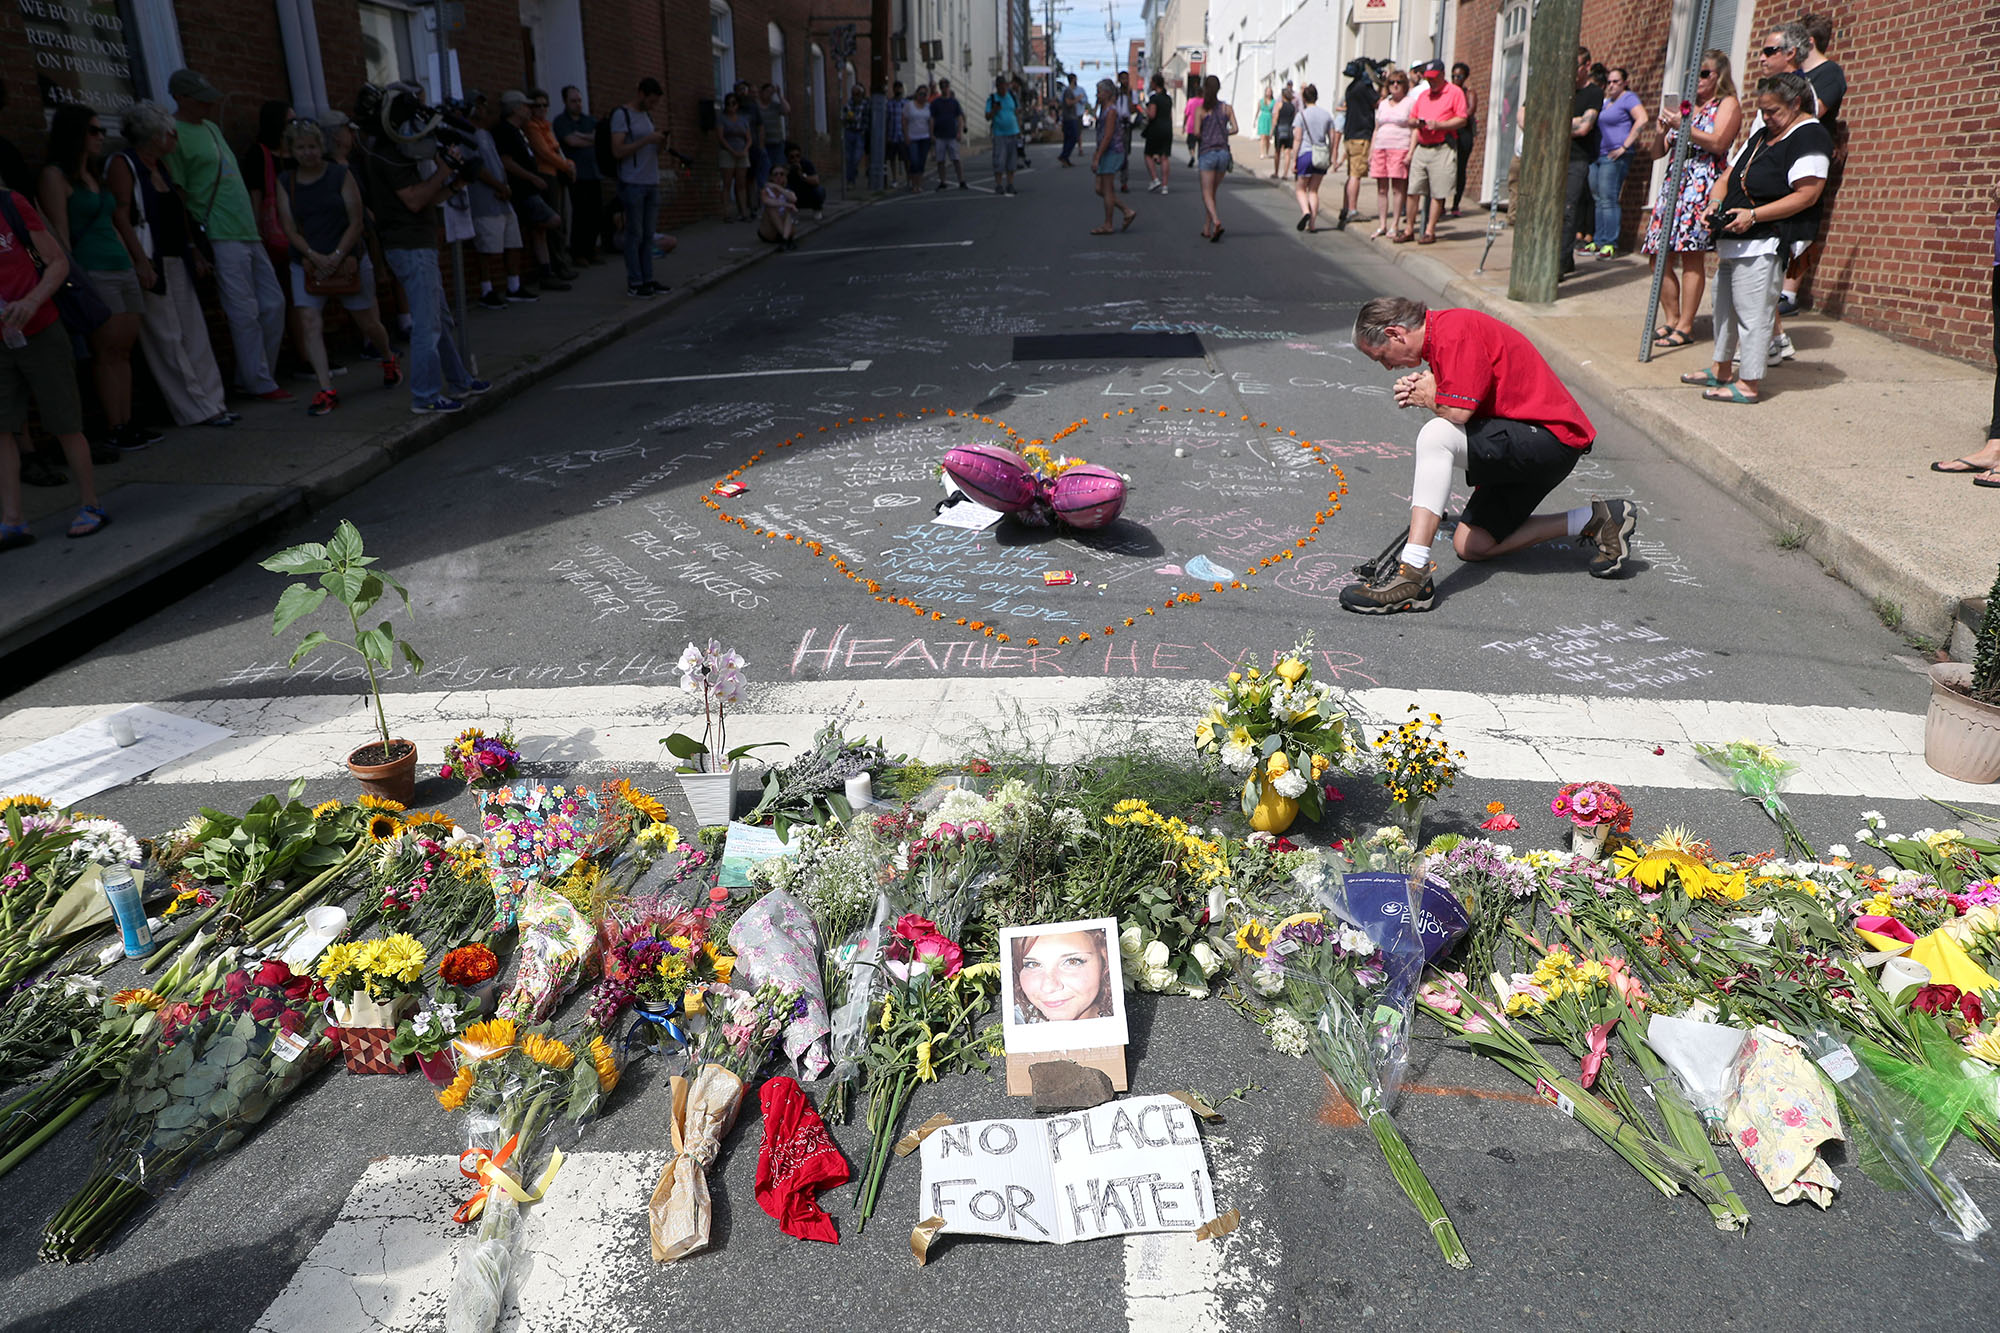 People visit a makeshift memorial for Heather Heyer on 4th Street at the Downtown Mall on Sunday, August 13, 2017. Heyer was killed Saturday when James Alex Fields, Jr. drove a Dodge Challenger into a crowd marching up the street.